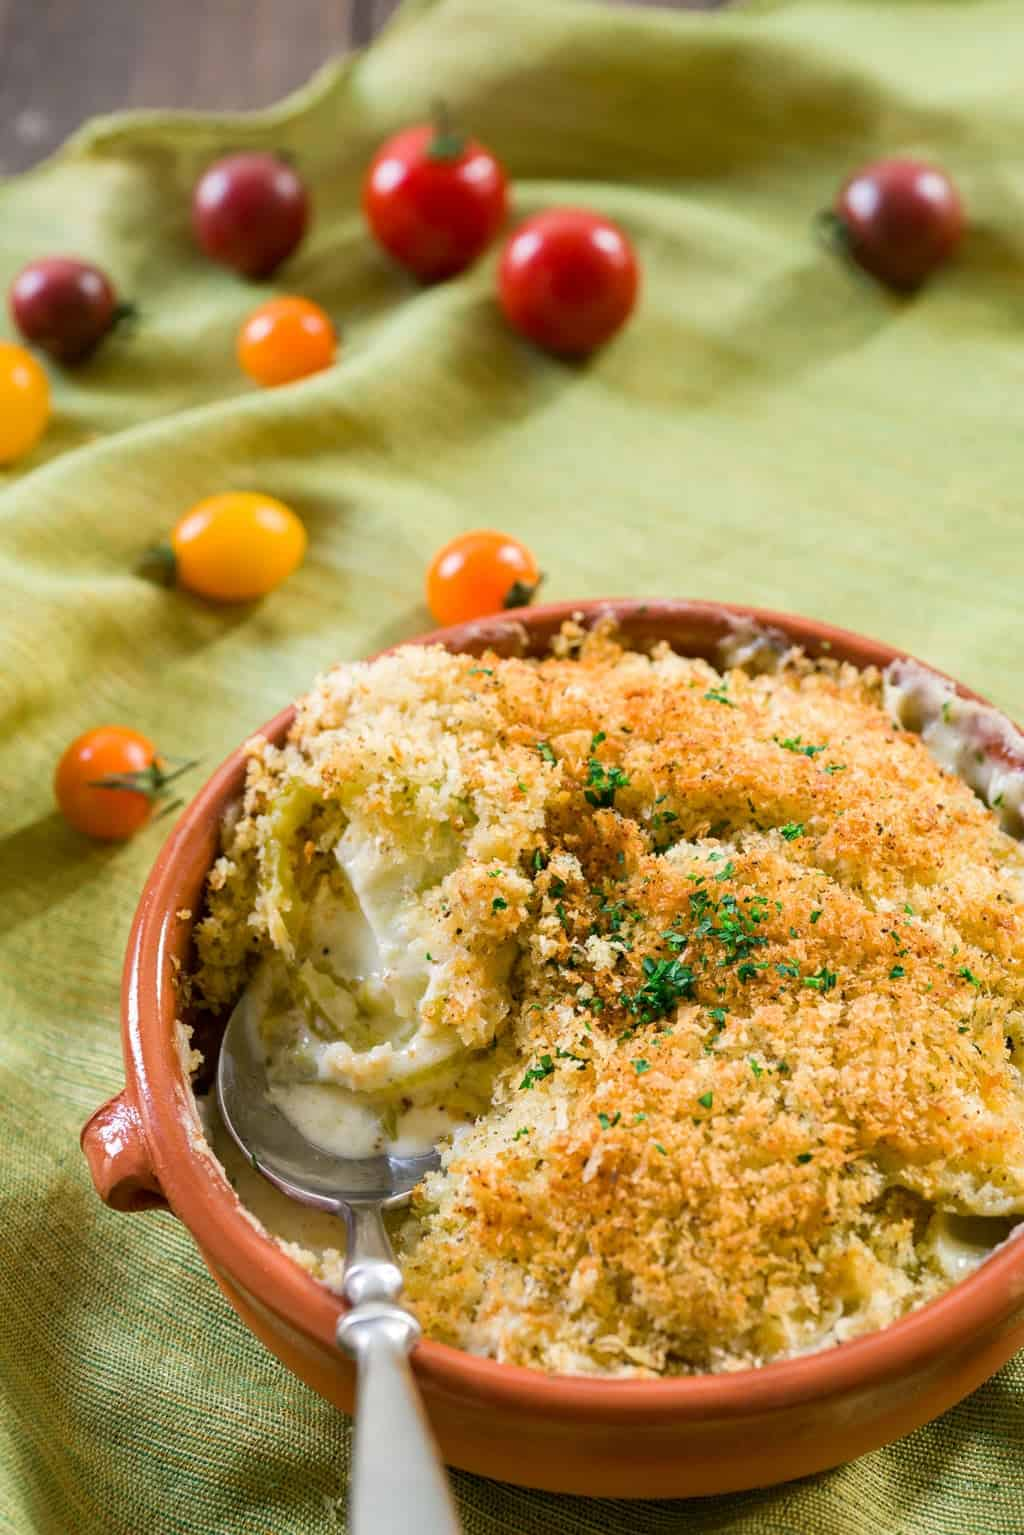 Tart tender green tomatoes are surrounded by a cheesy mornay sauce bubbling up from below in this Green Tomato Gratin. With a crisp panko and herb topping, this decadent side is addictively good.